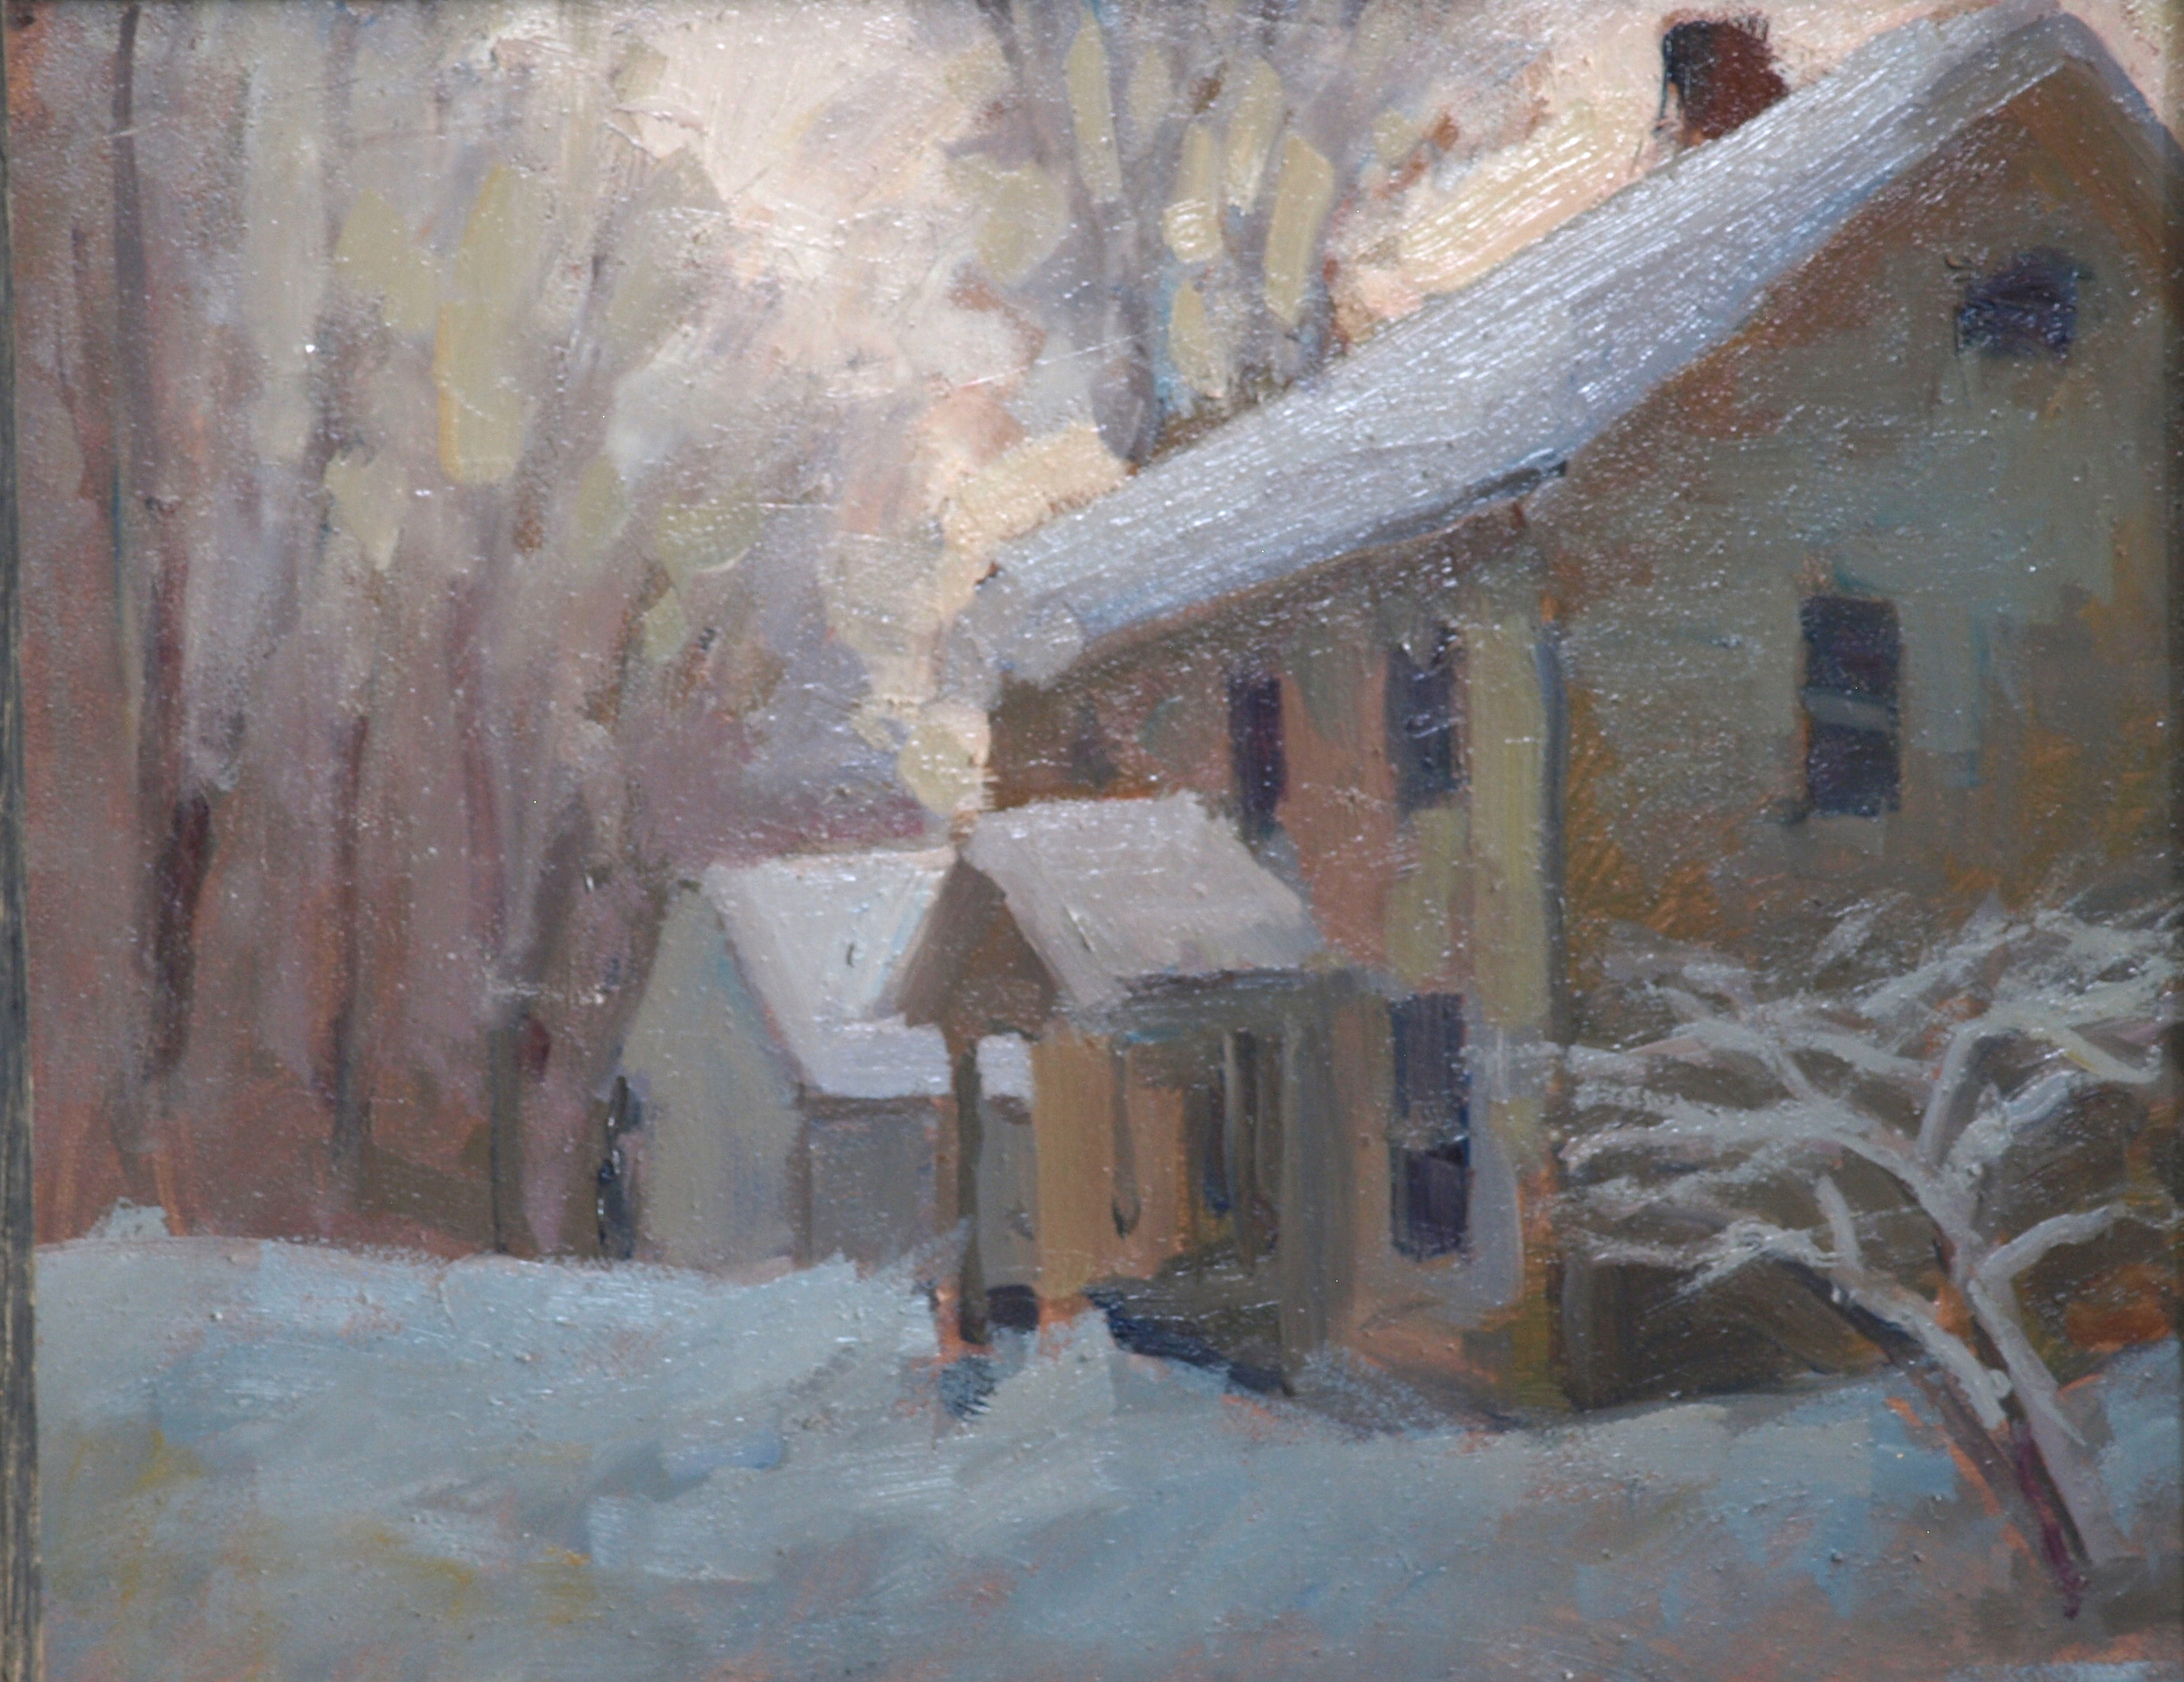 End of the Storm, Oil on Panel, 8 x 10 Inches, by Susan Grisell, $150